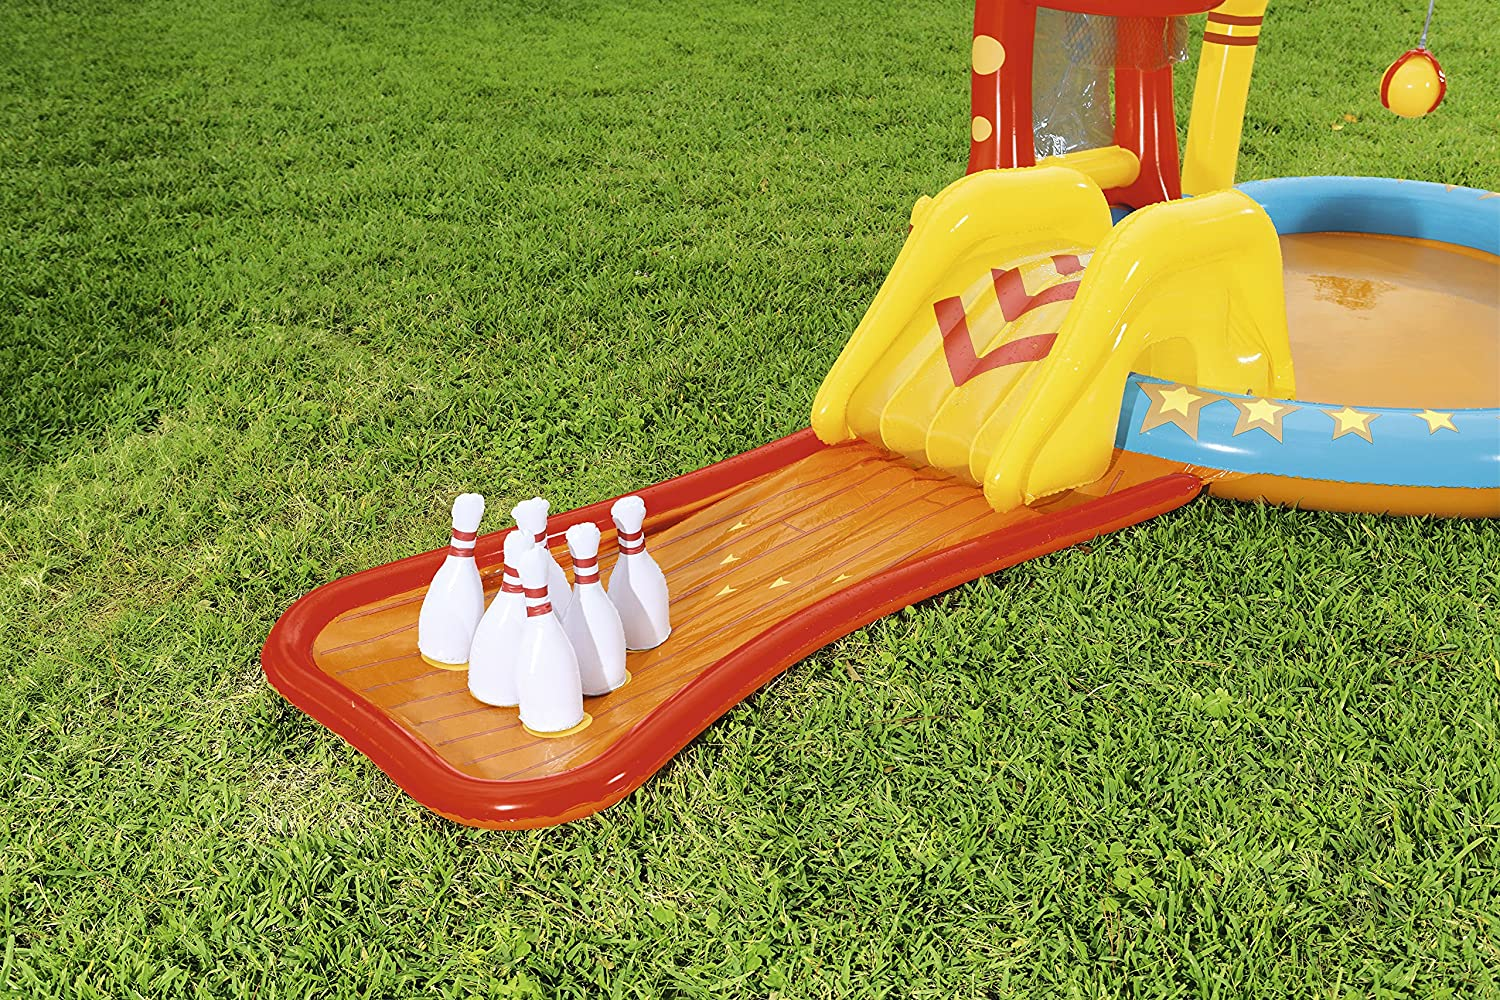 Bestway Lil Champ Play Center Inflatable Play Center Best way Hong Kong International Limited Import FOB Ningbo 53068E